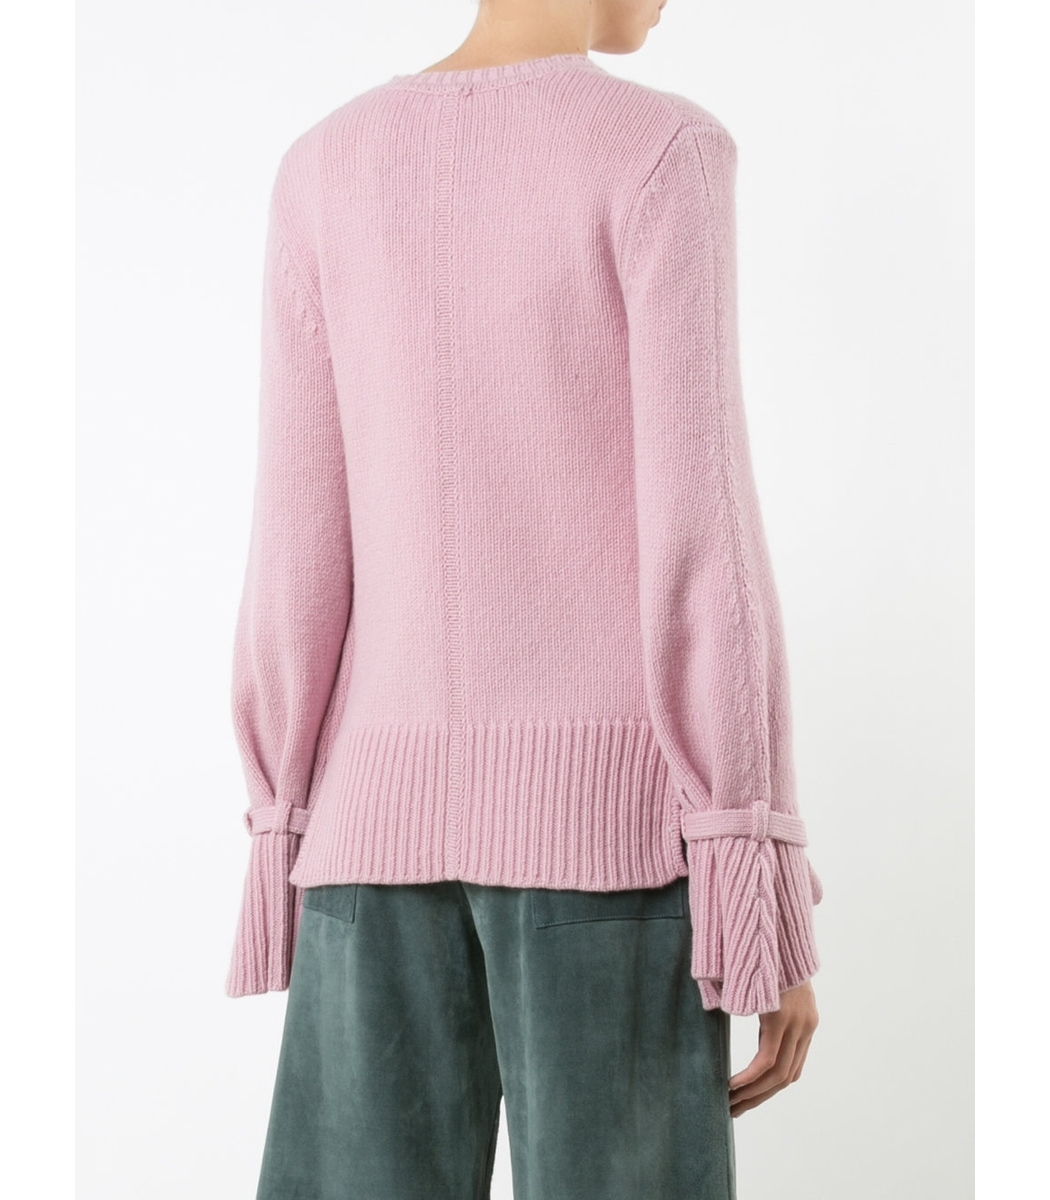 Adam Lippes Tie Cuff Sweater - Pink Crew Neck Sweater